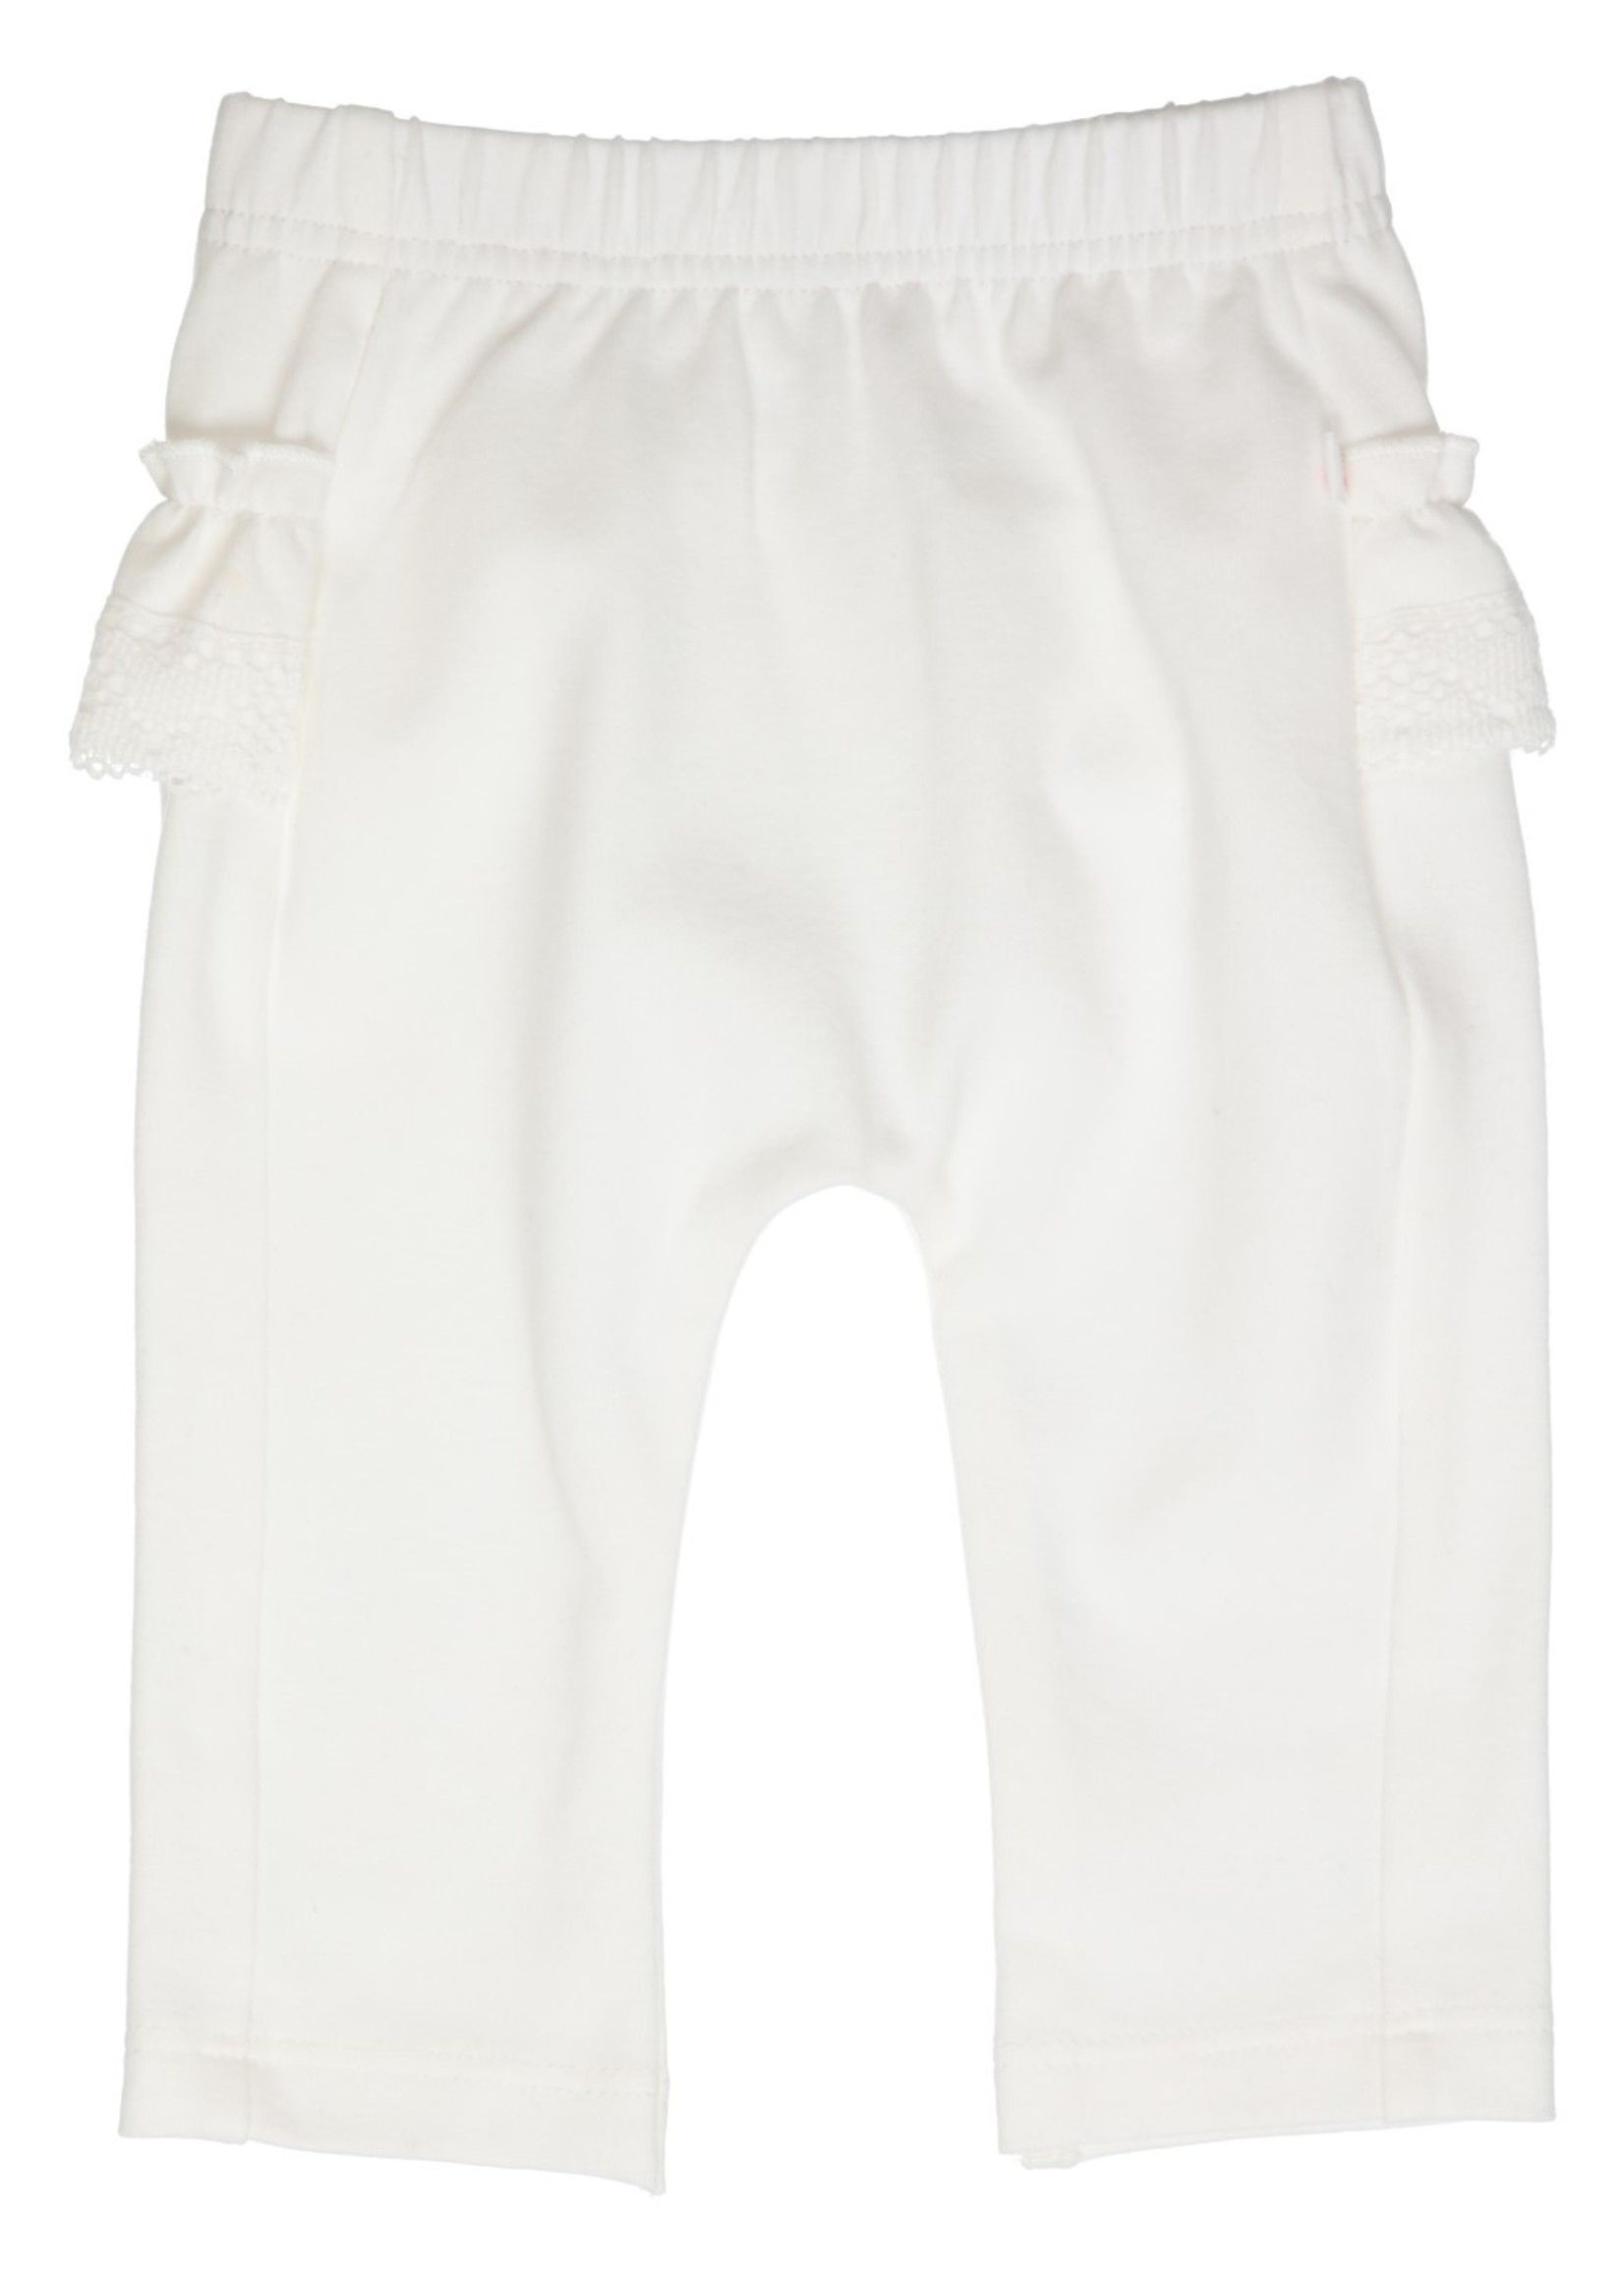 Gymp Gymp trousers flounces off white